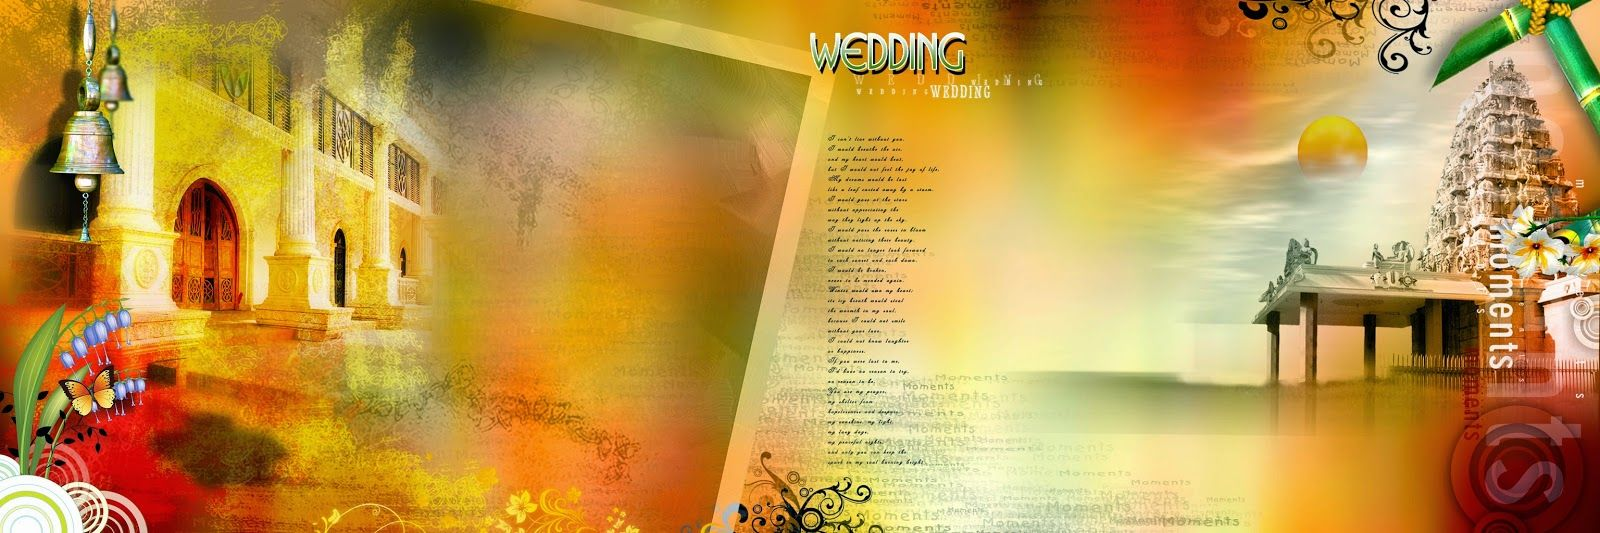 Wedding Album Background vectors and photos - free graphic resources